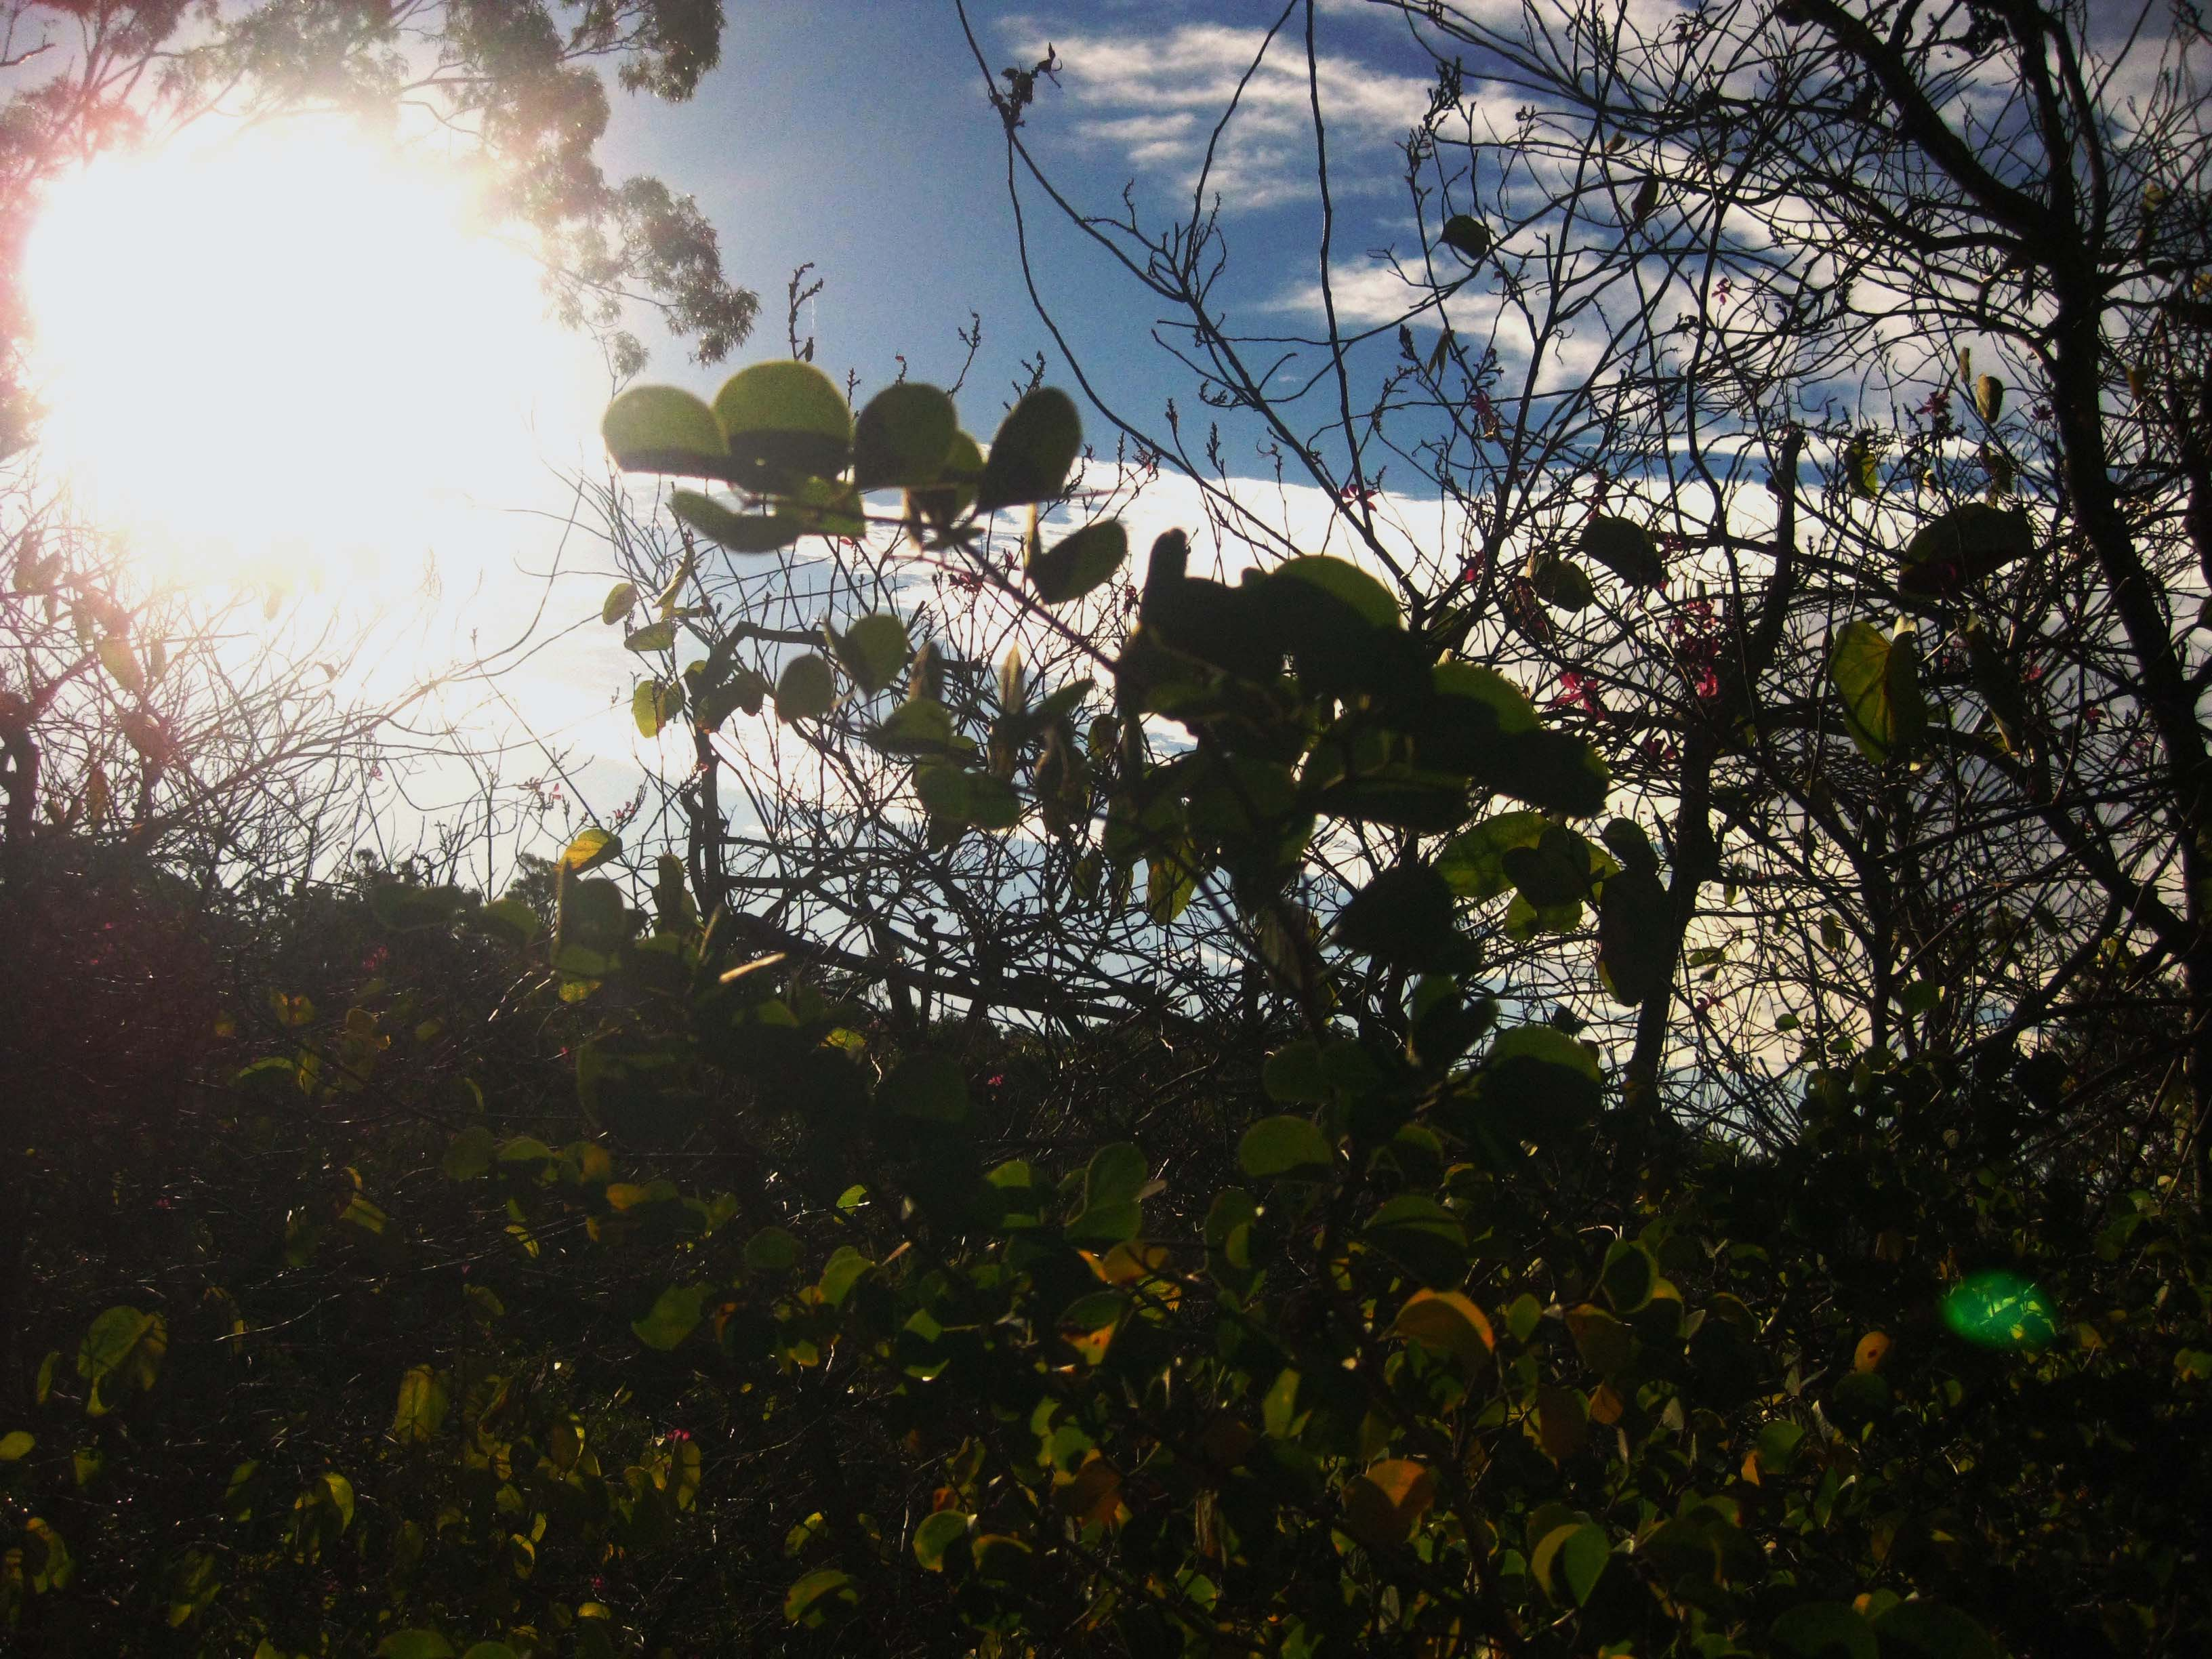 Photo of a tangle of bushes with the bright sun and blue sky coming through the leaves and branches.